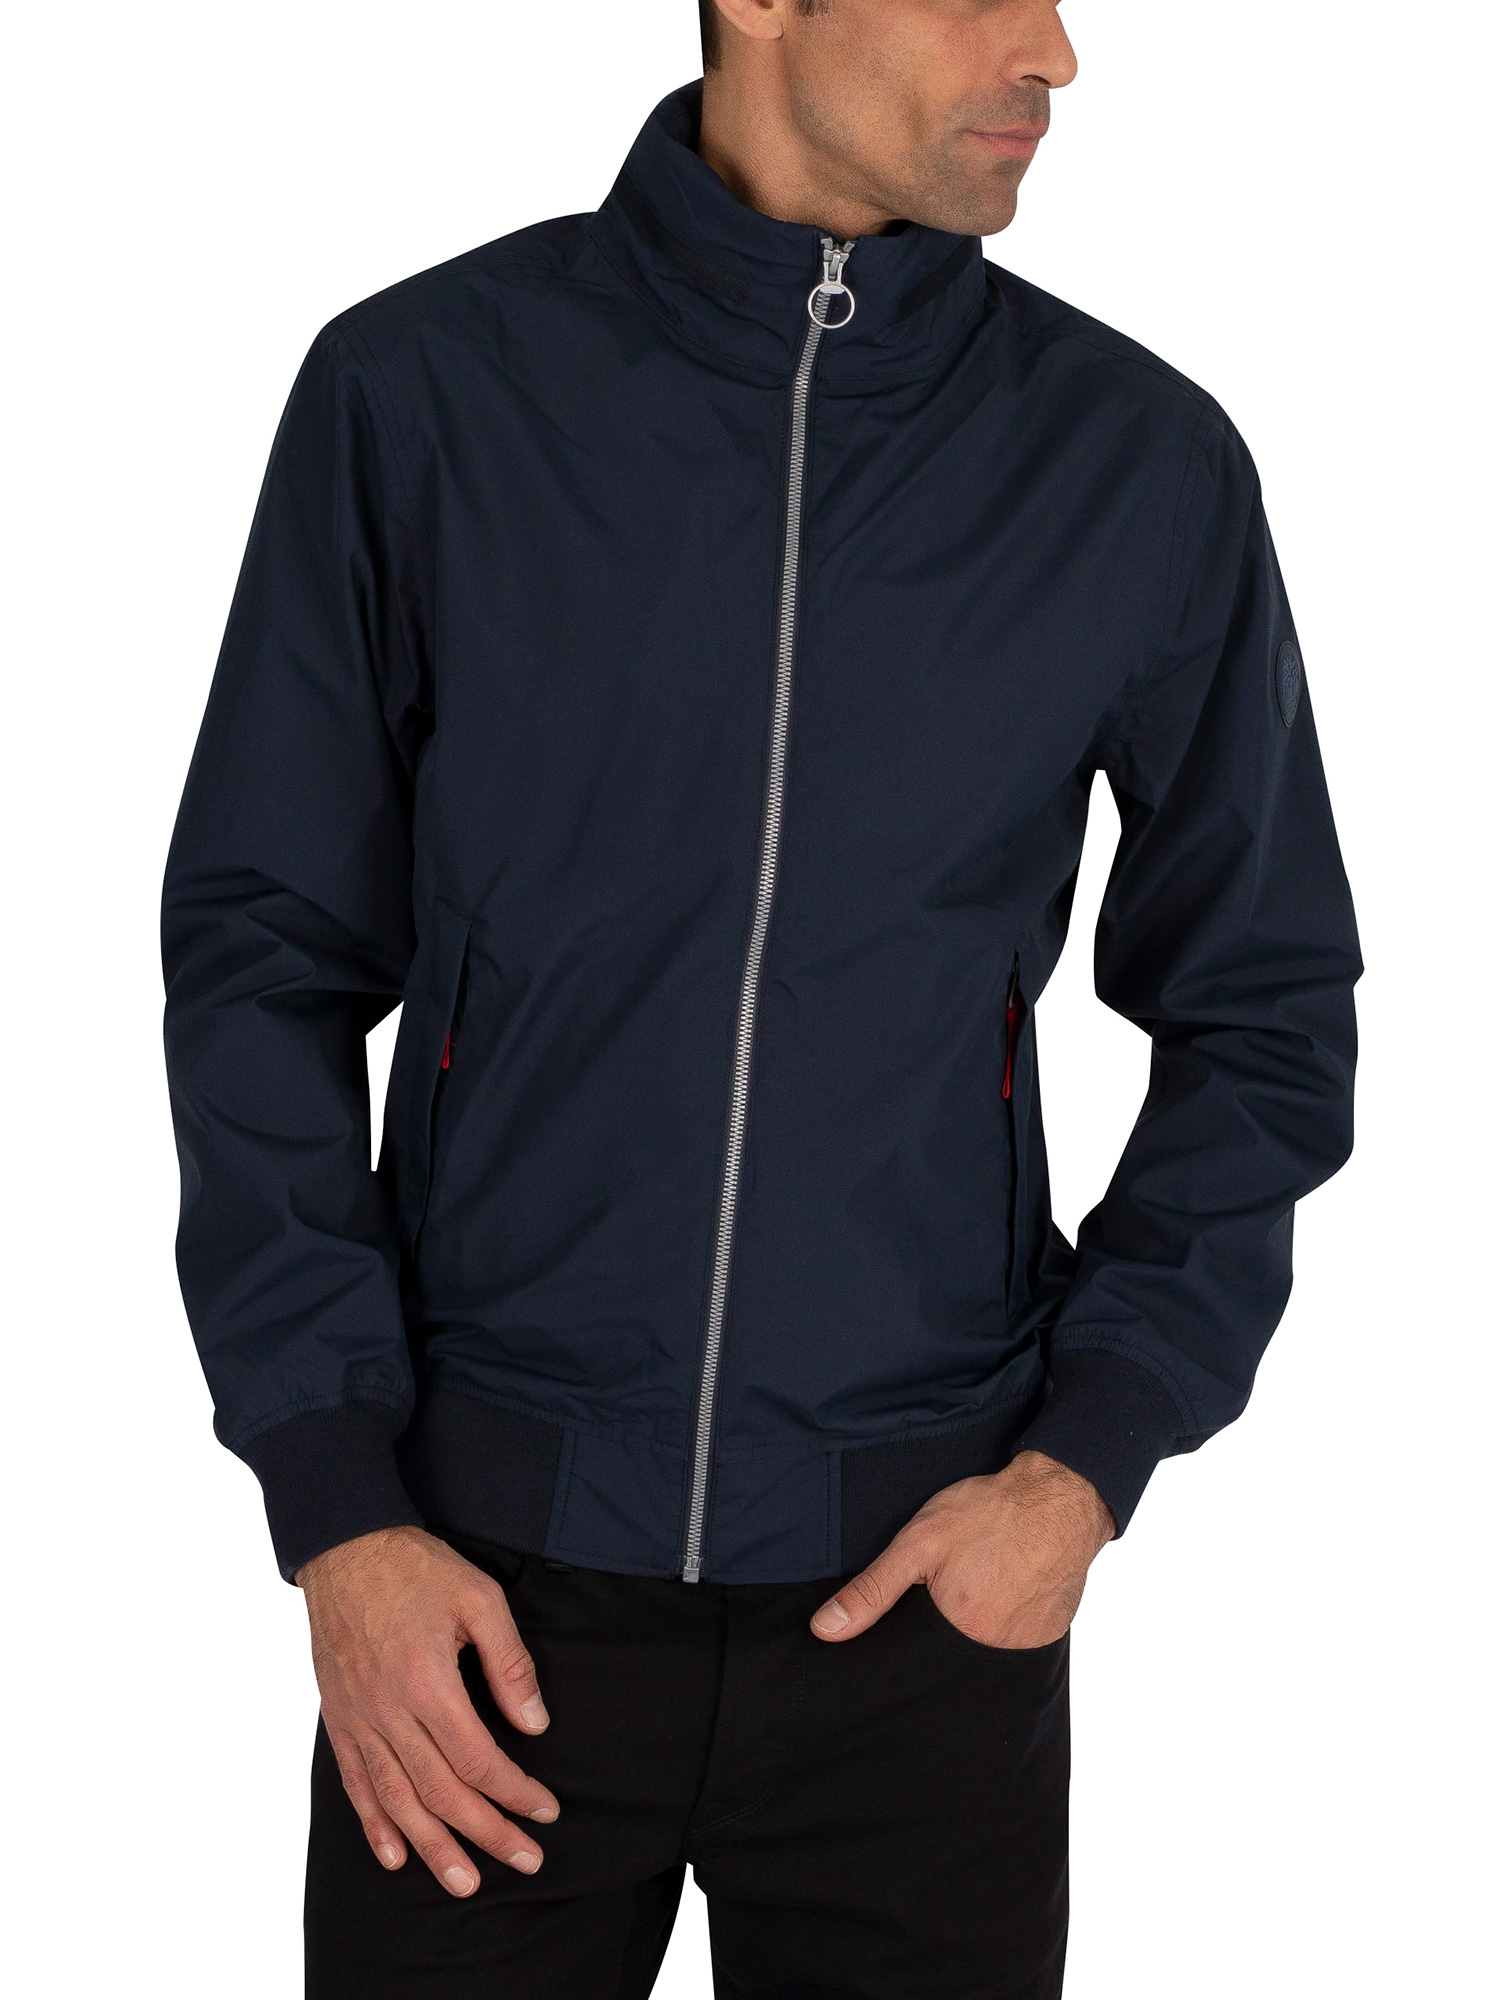 Timberland Sailor Bomber Jacket - Navy